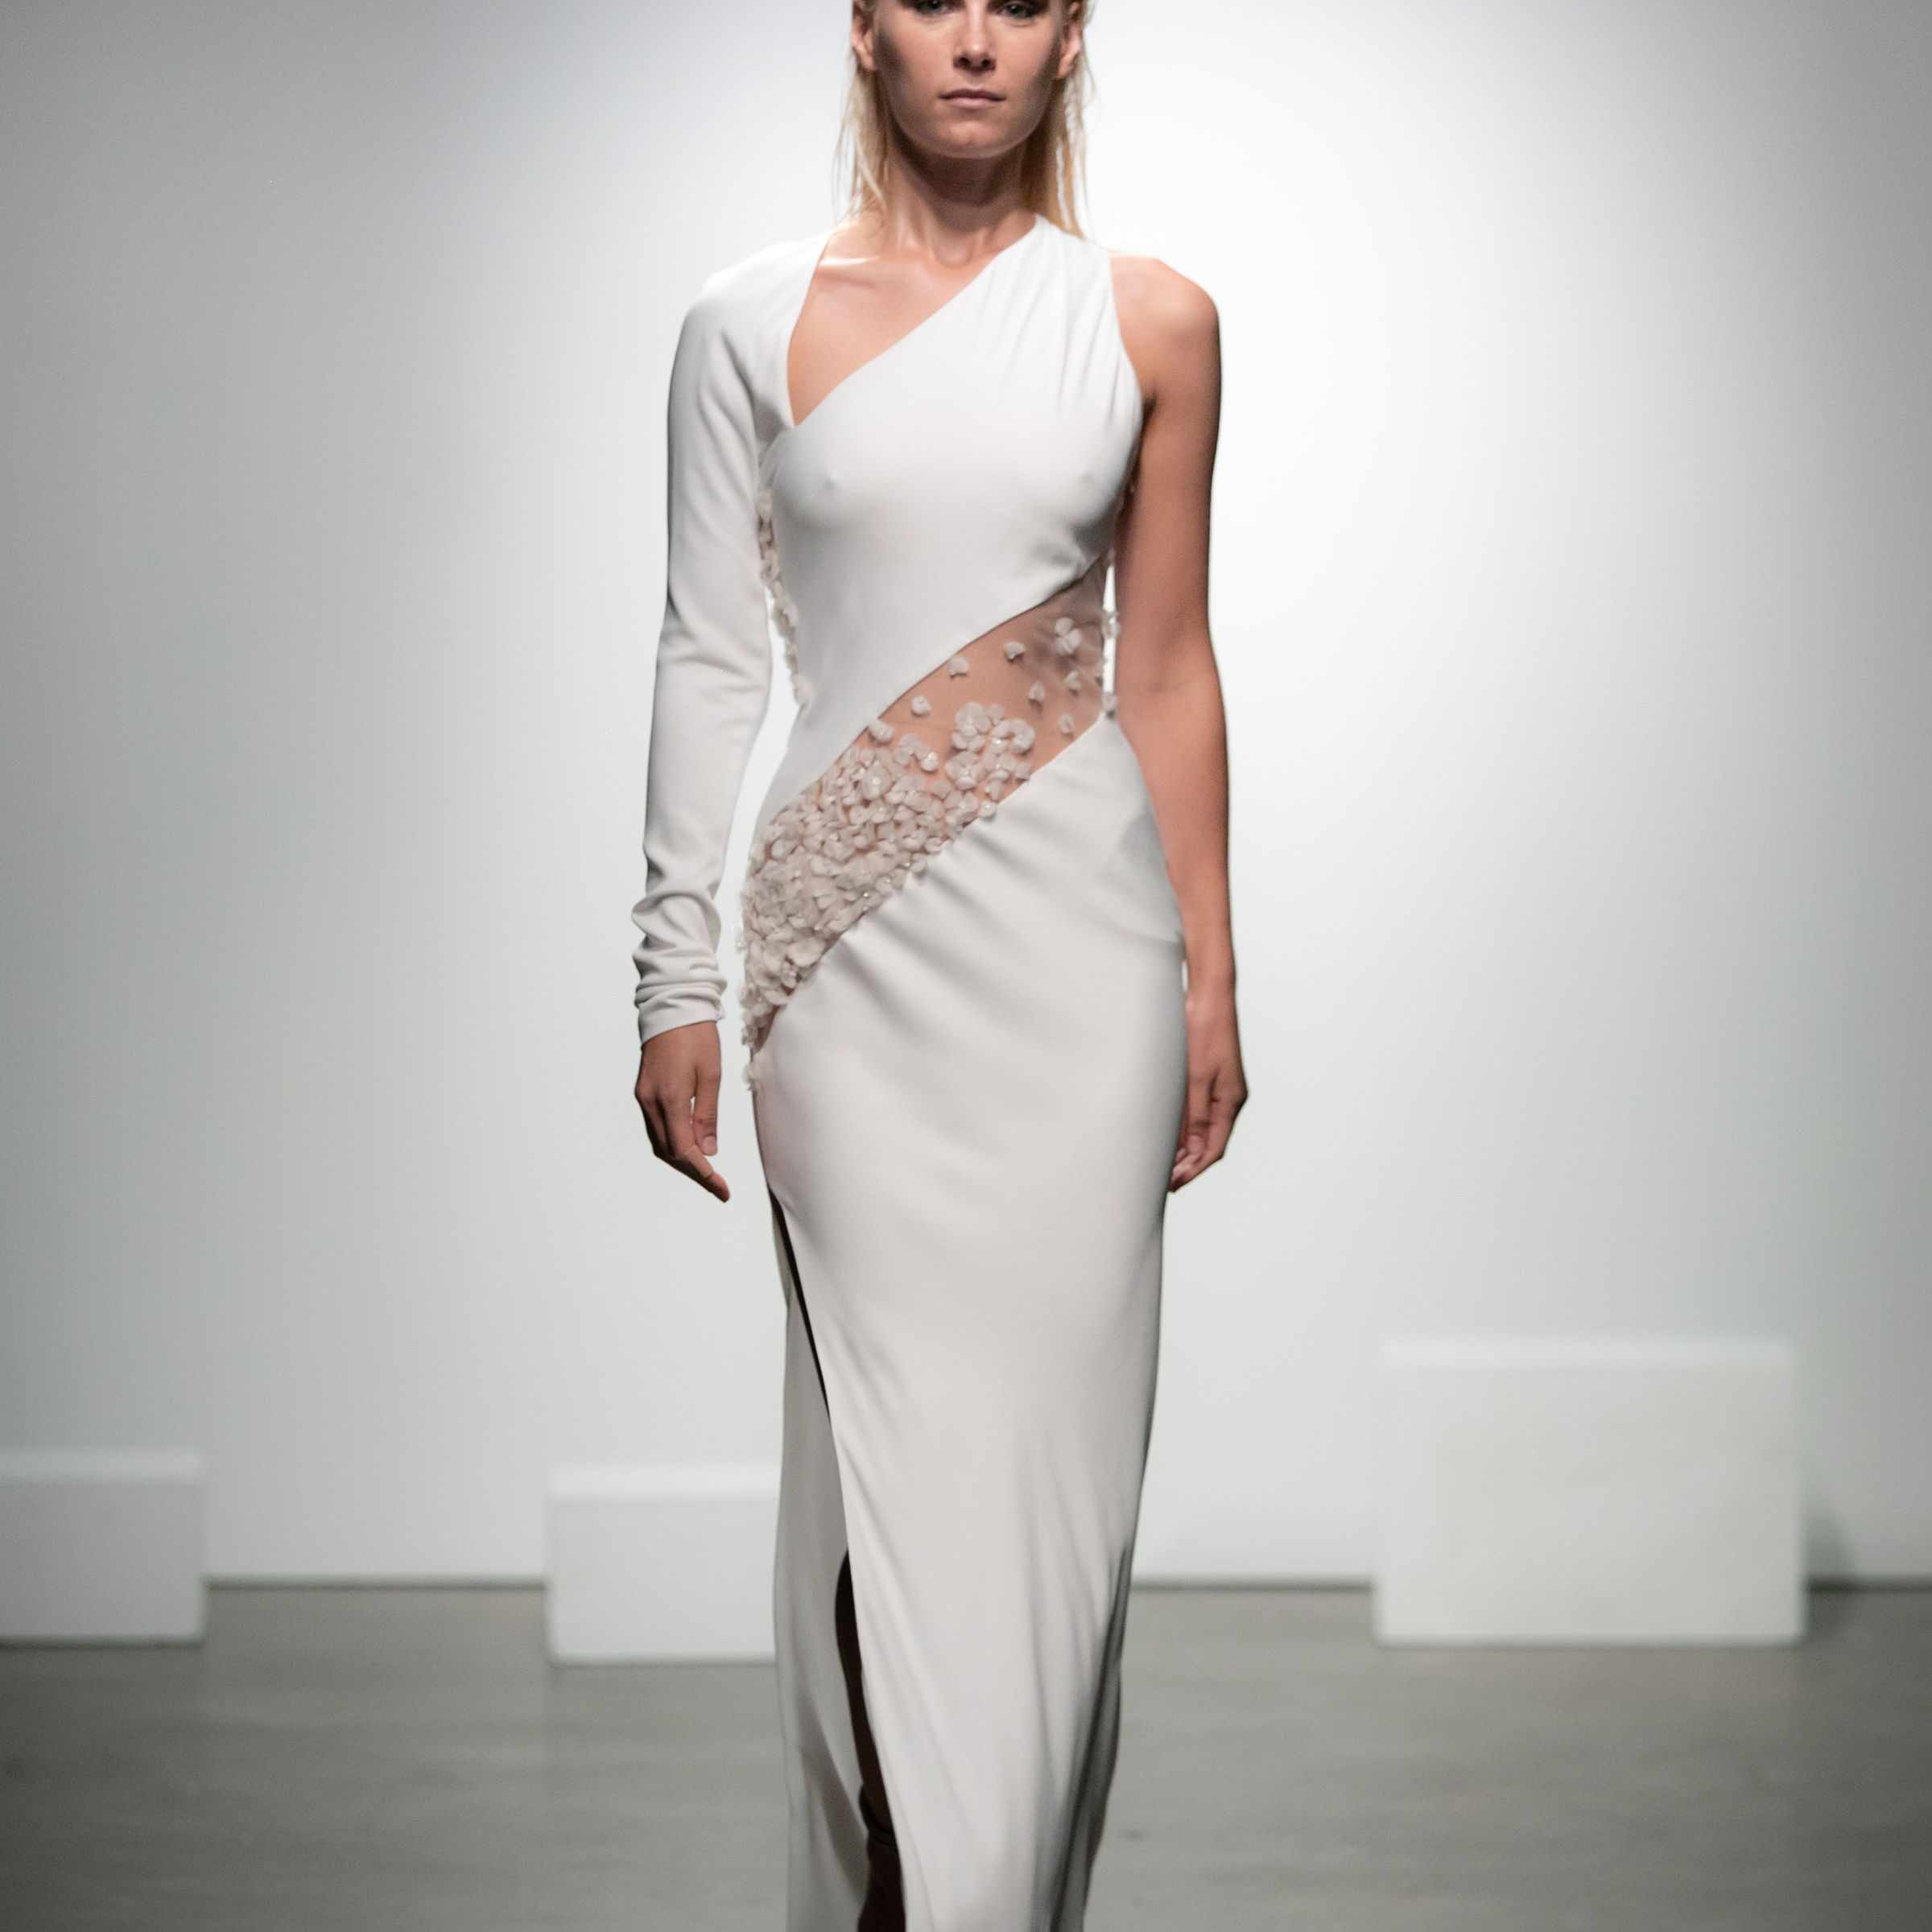 Model in one-sleeved asymmetrical crepe dress with embroidered tulle ribbon on torso